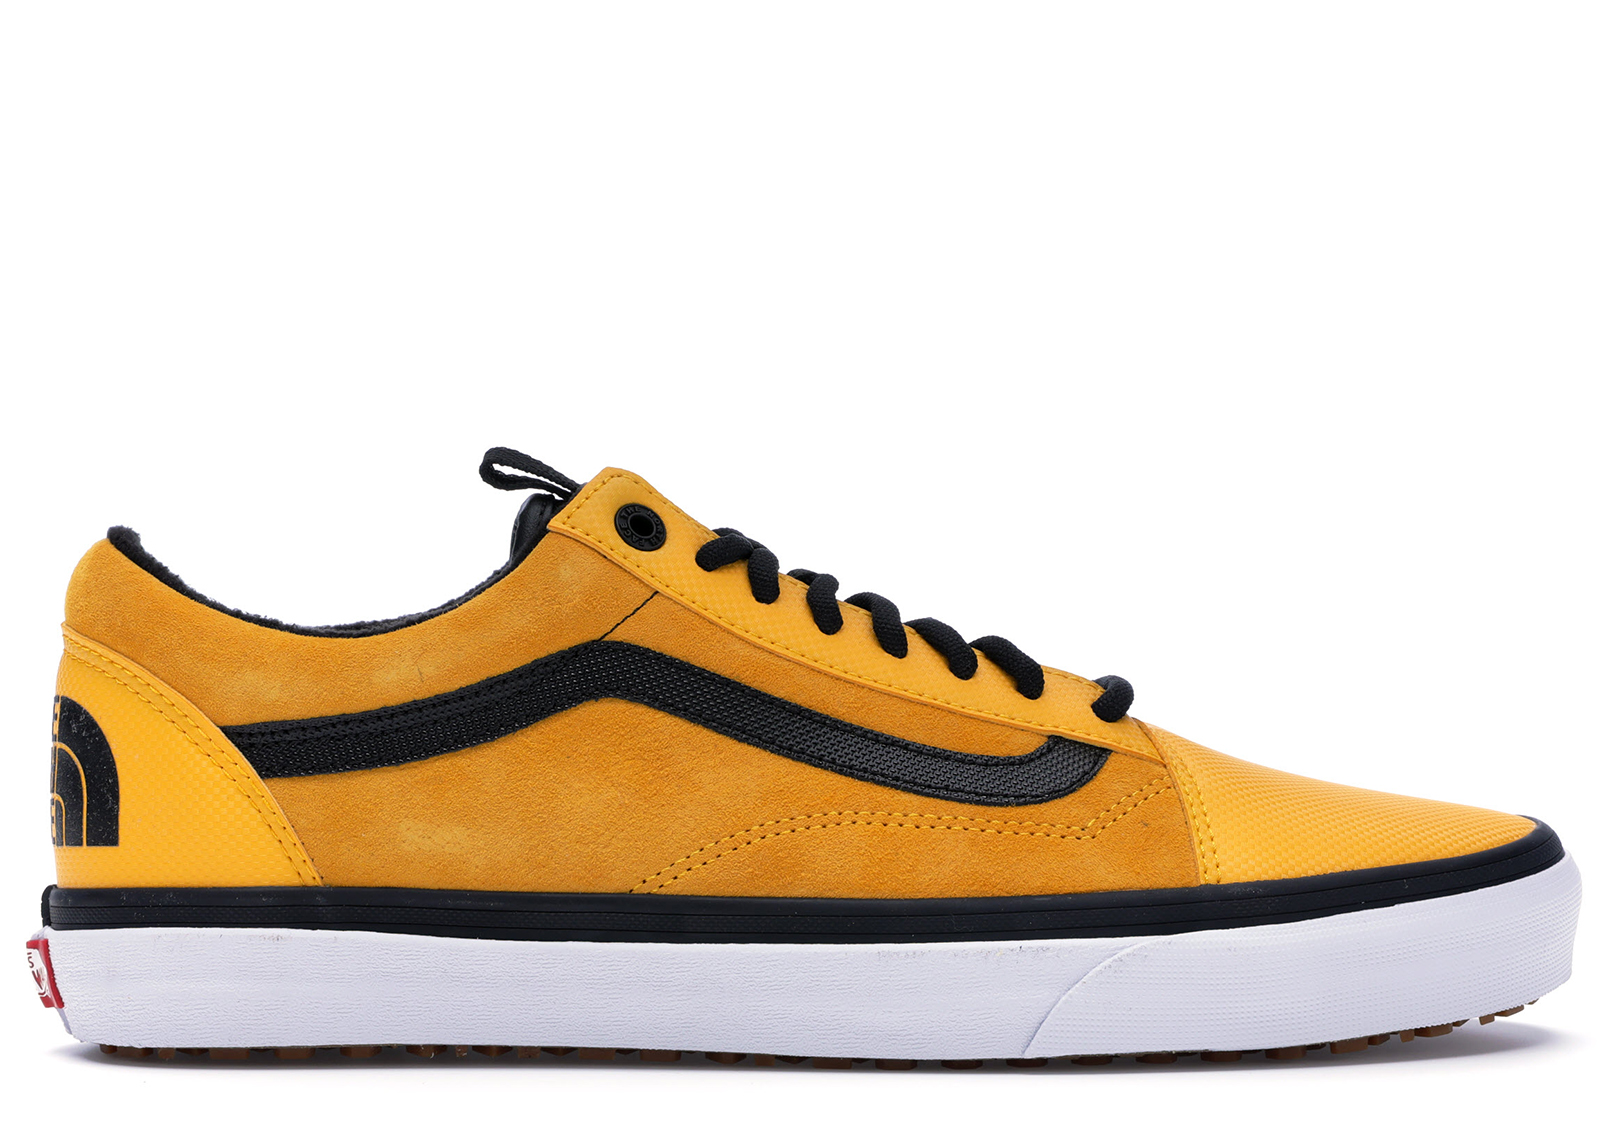 Vans Old Skool MTE DX The North Face Yellow - VN0A348GQWI